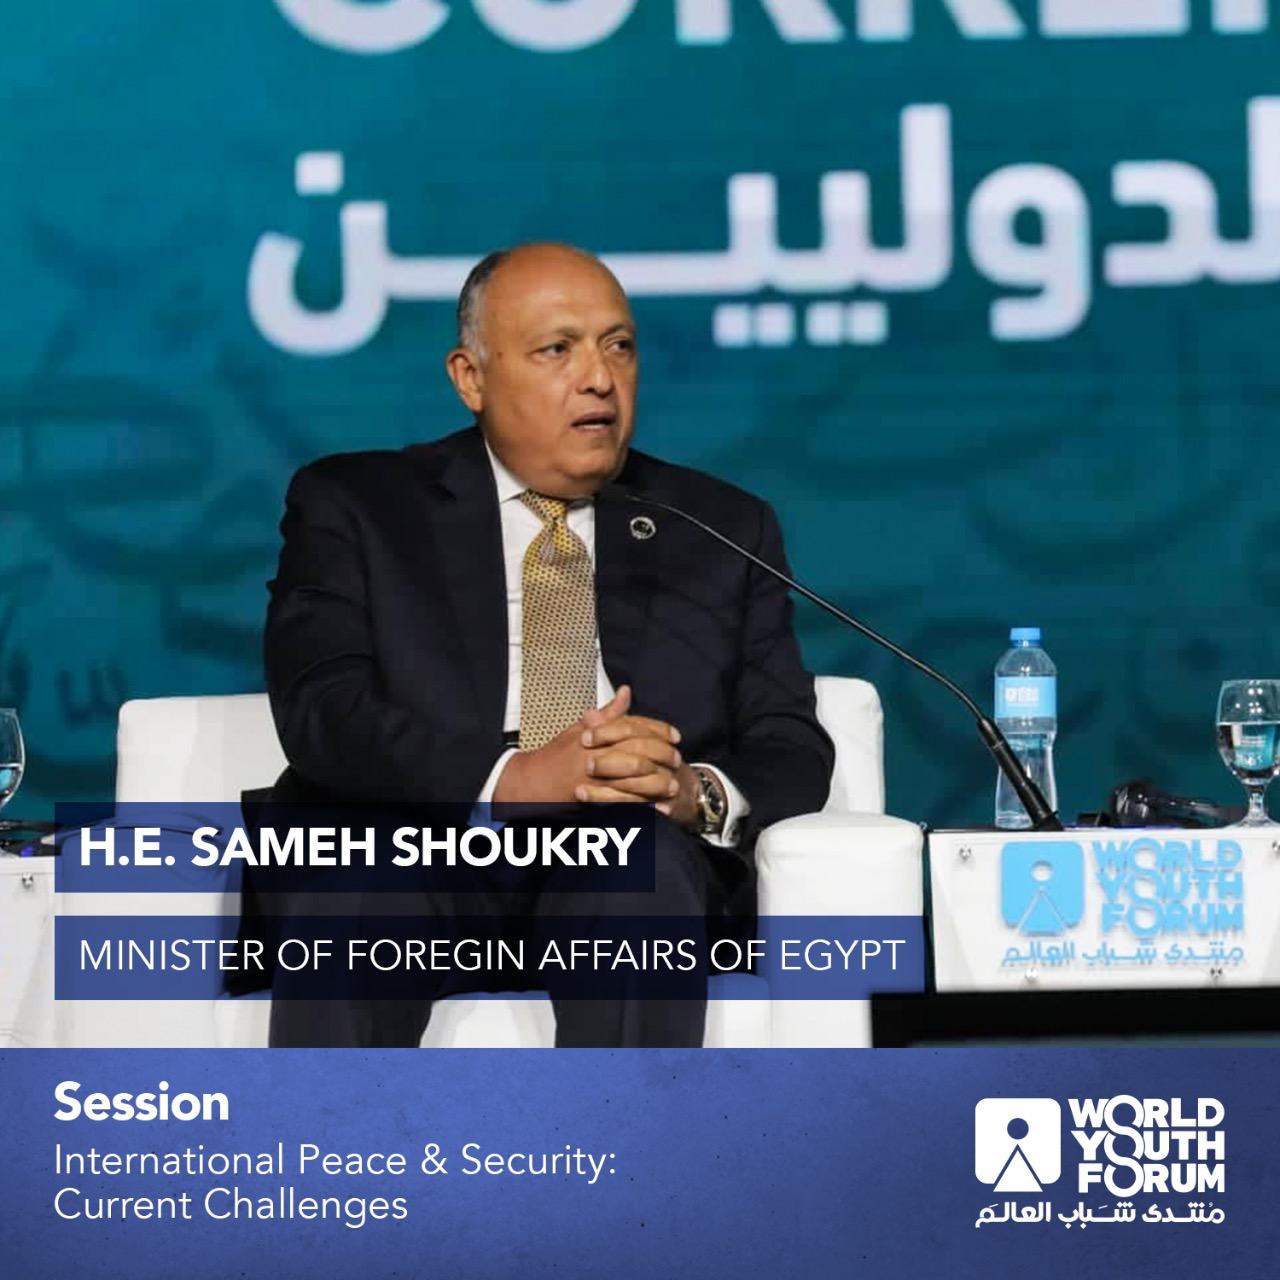 The incidents of 2011 destabilized international peace and security: Egypt's FM